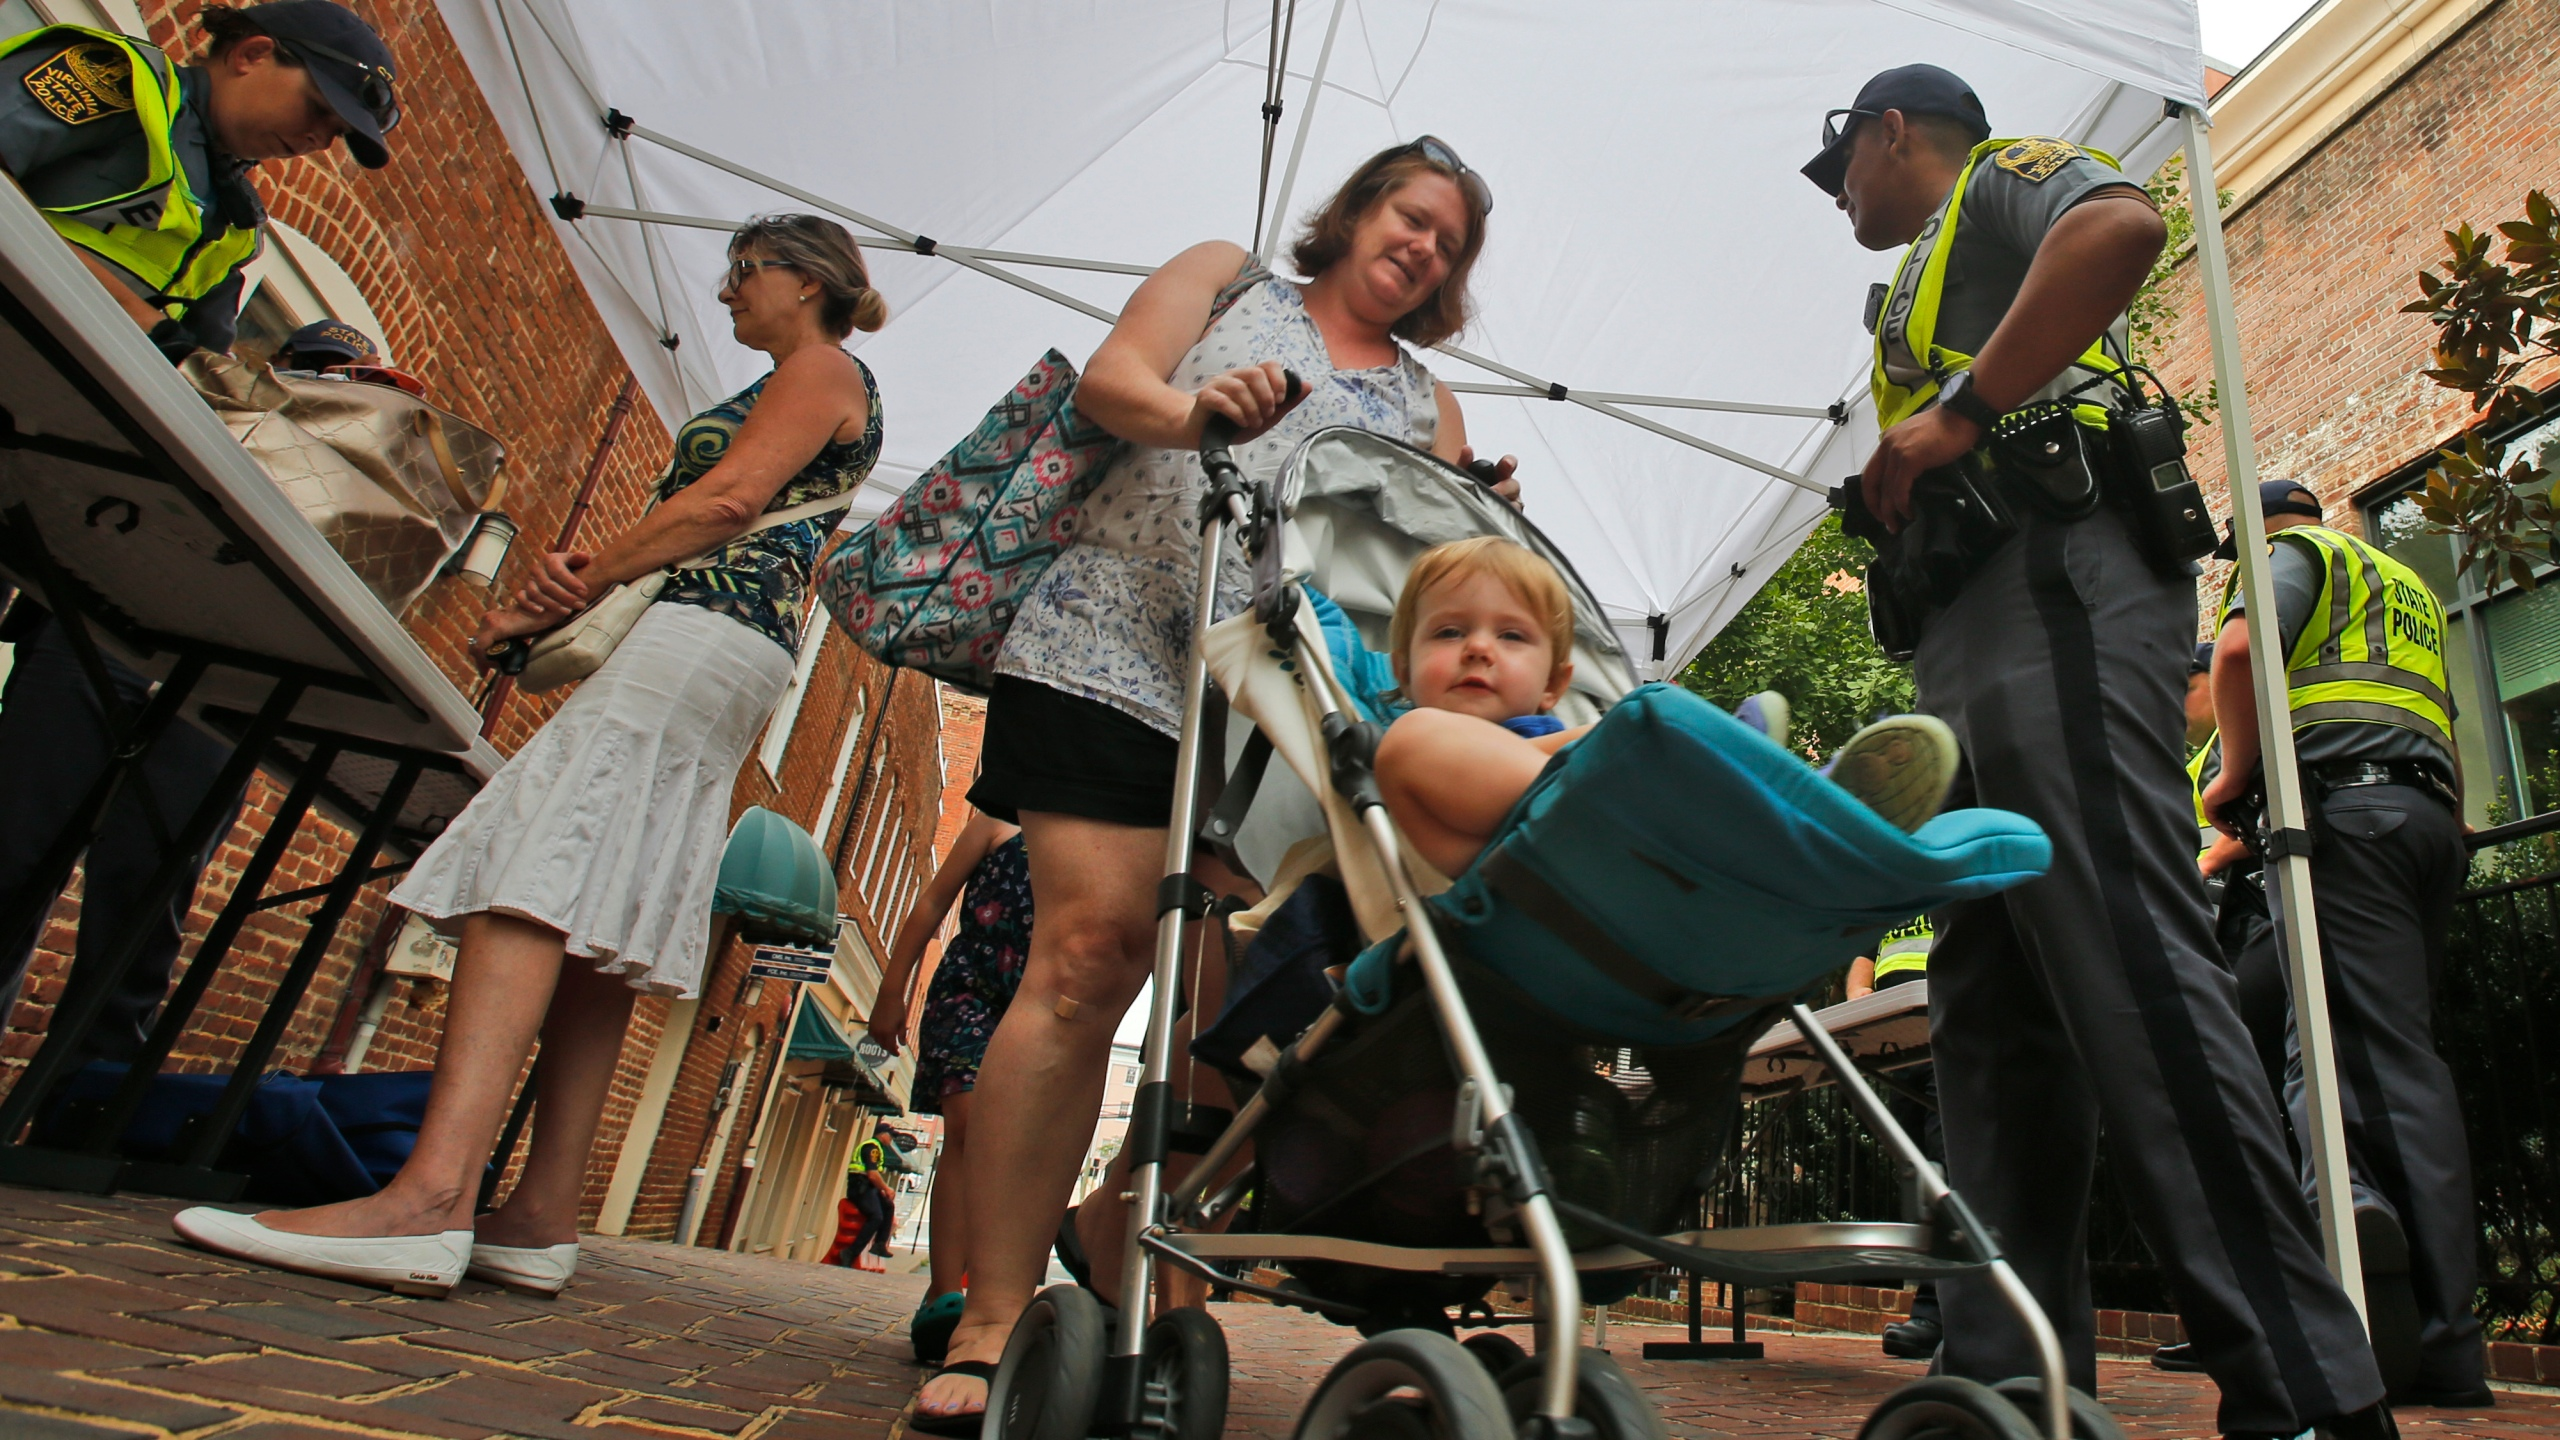 Charlottesville_One_Year_Later_Rally_59425-159532.jpg11284920